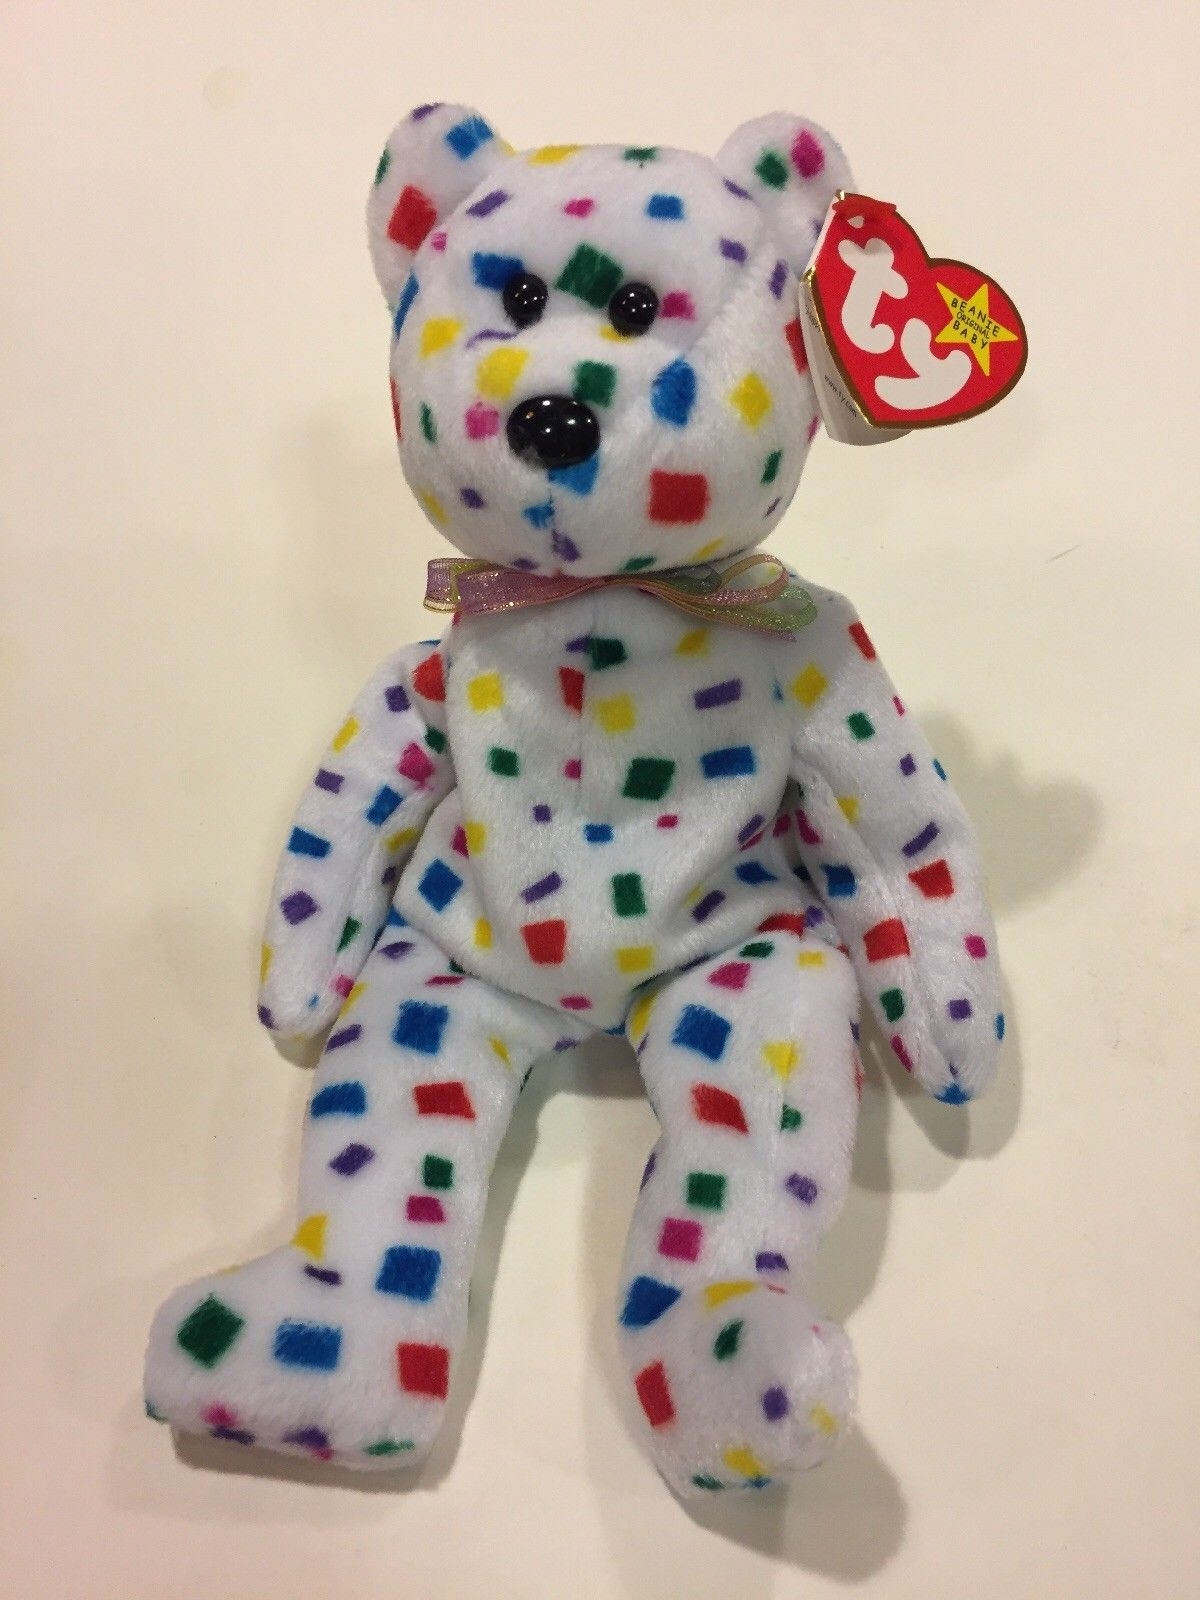 c76fac9a7ea Ty Beanie Babies Ty 2K NWMT 2000 with Case MAYBE ERROR - Cyber Dutchman